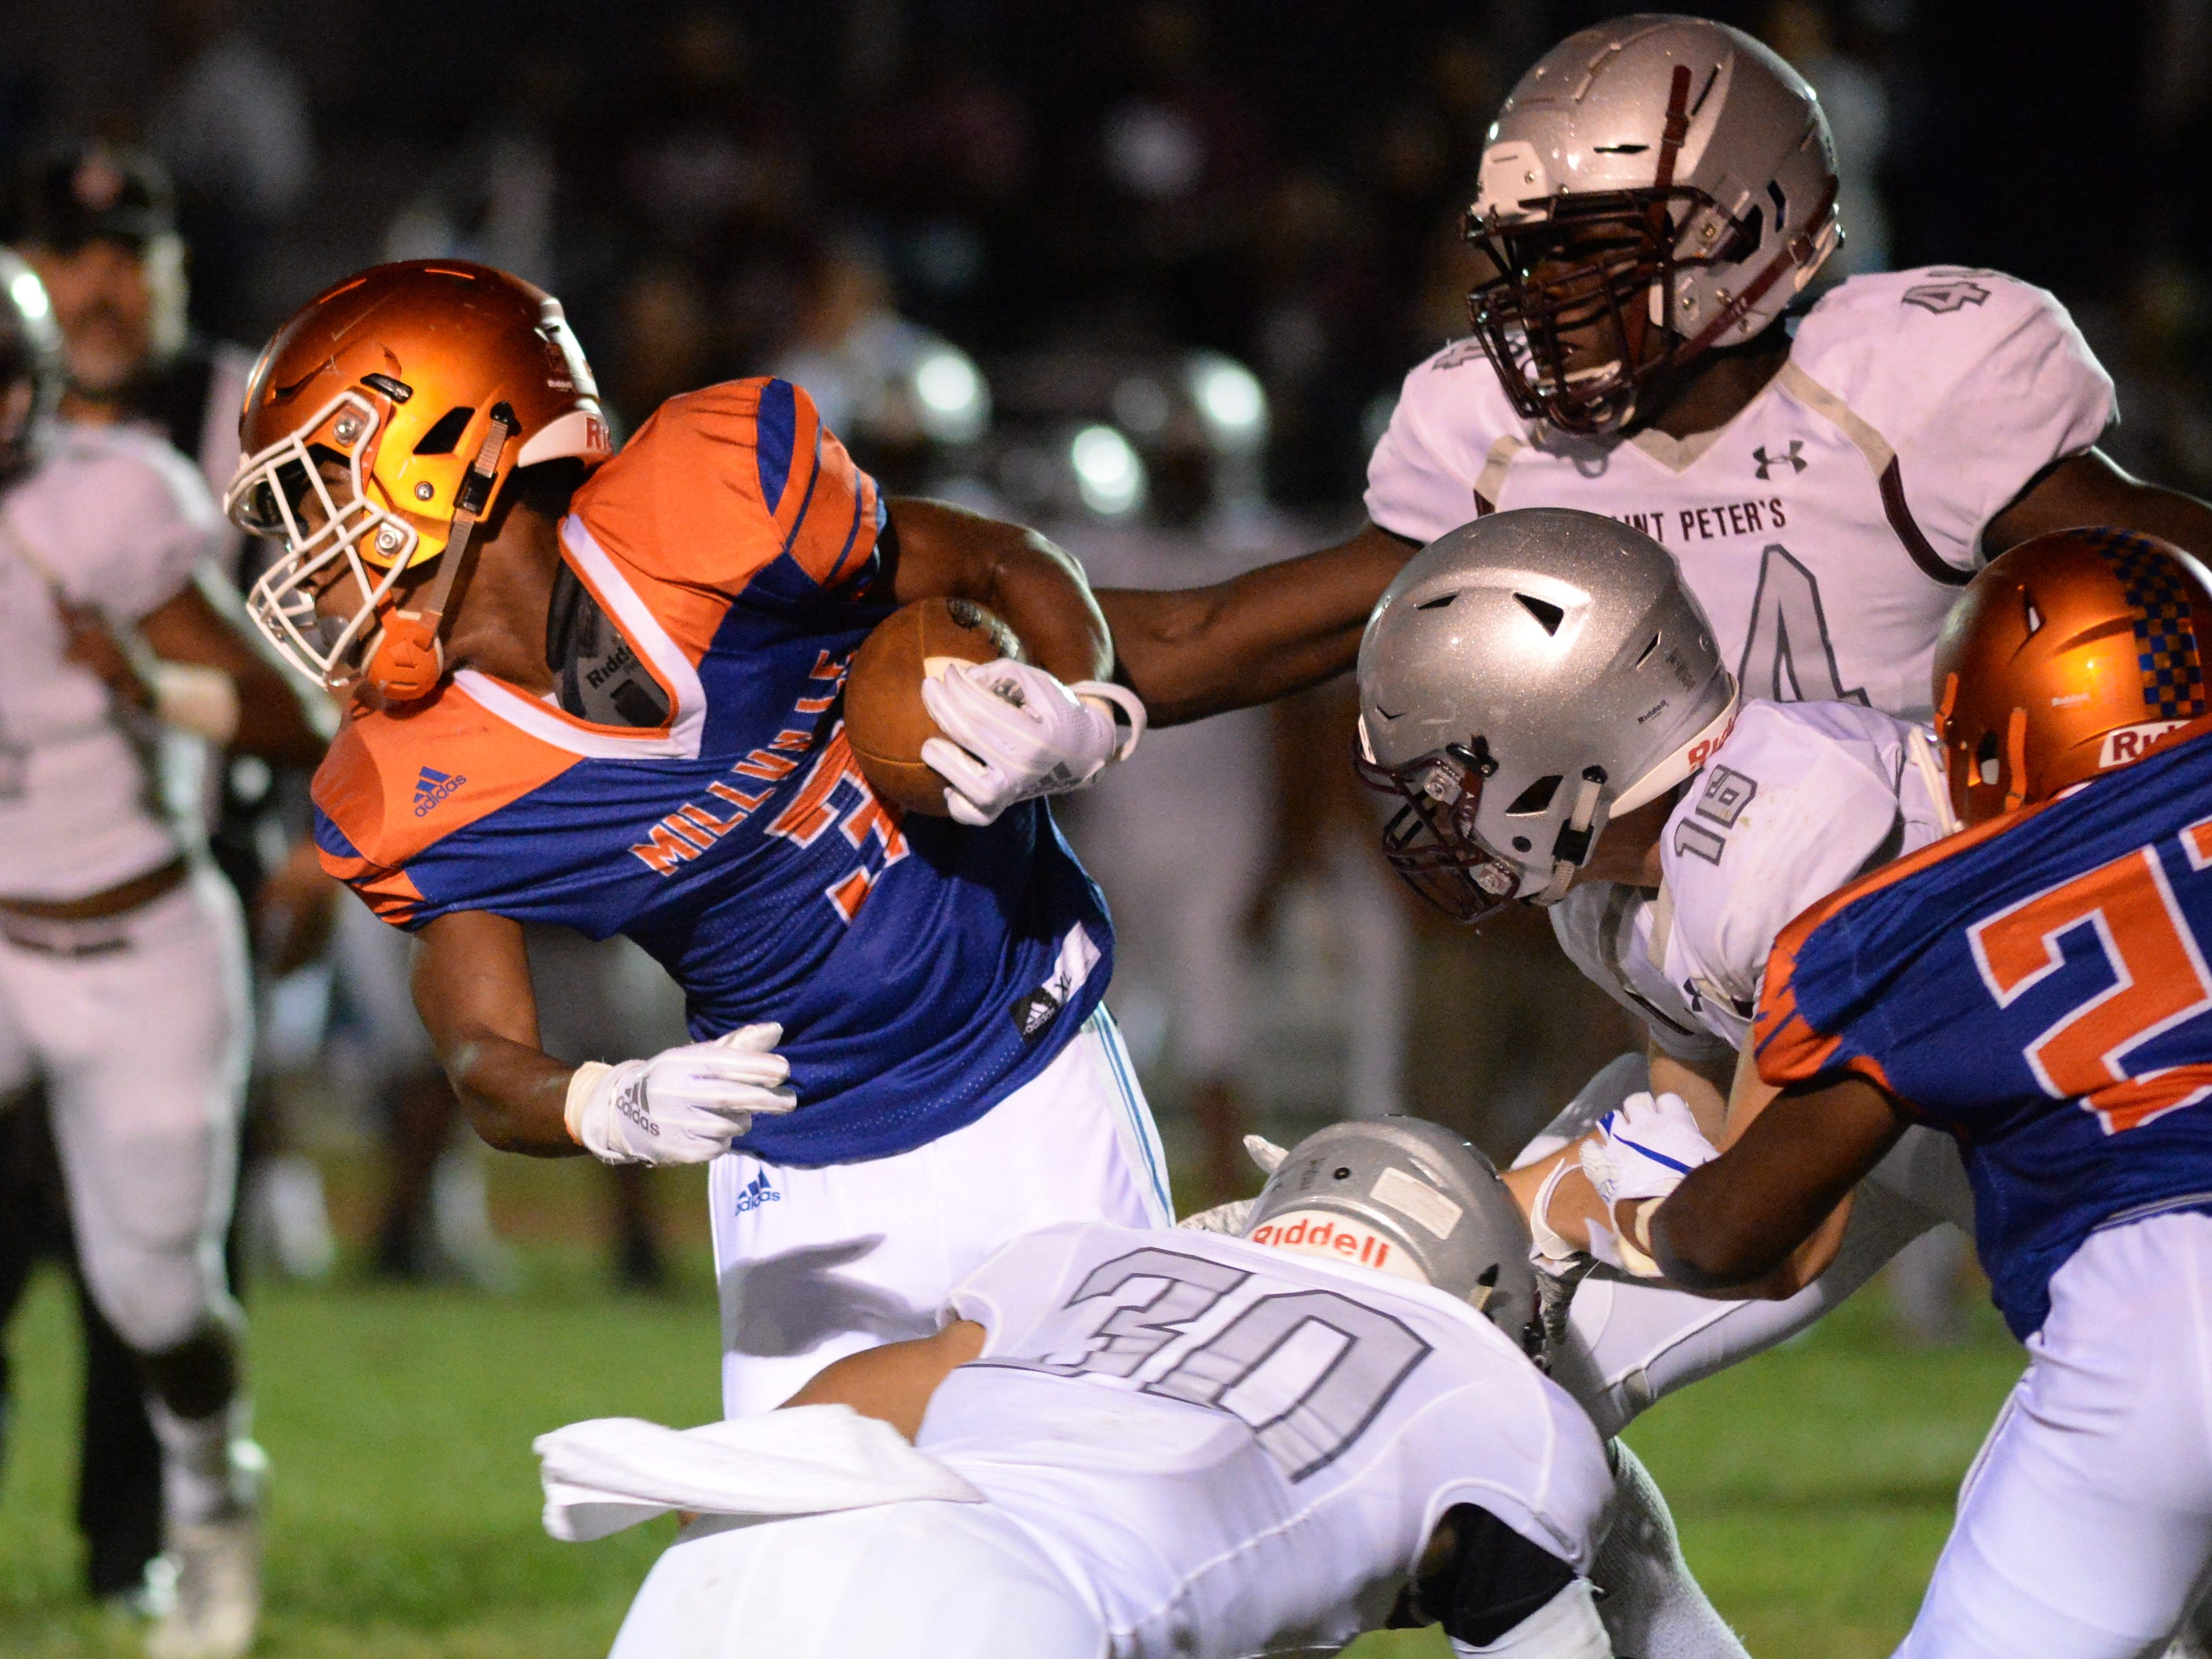 Millville's Cartier Gray breaks a St. Peter's Prep tackle as he carries the ball during the season opening football game at Millville Memorial High School, Friday, Aug. 31, 2018.